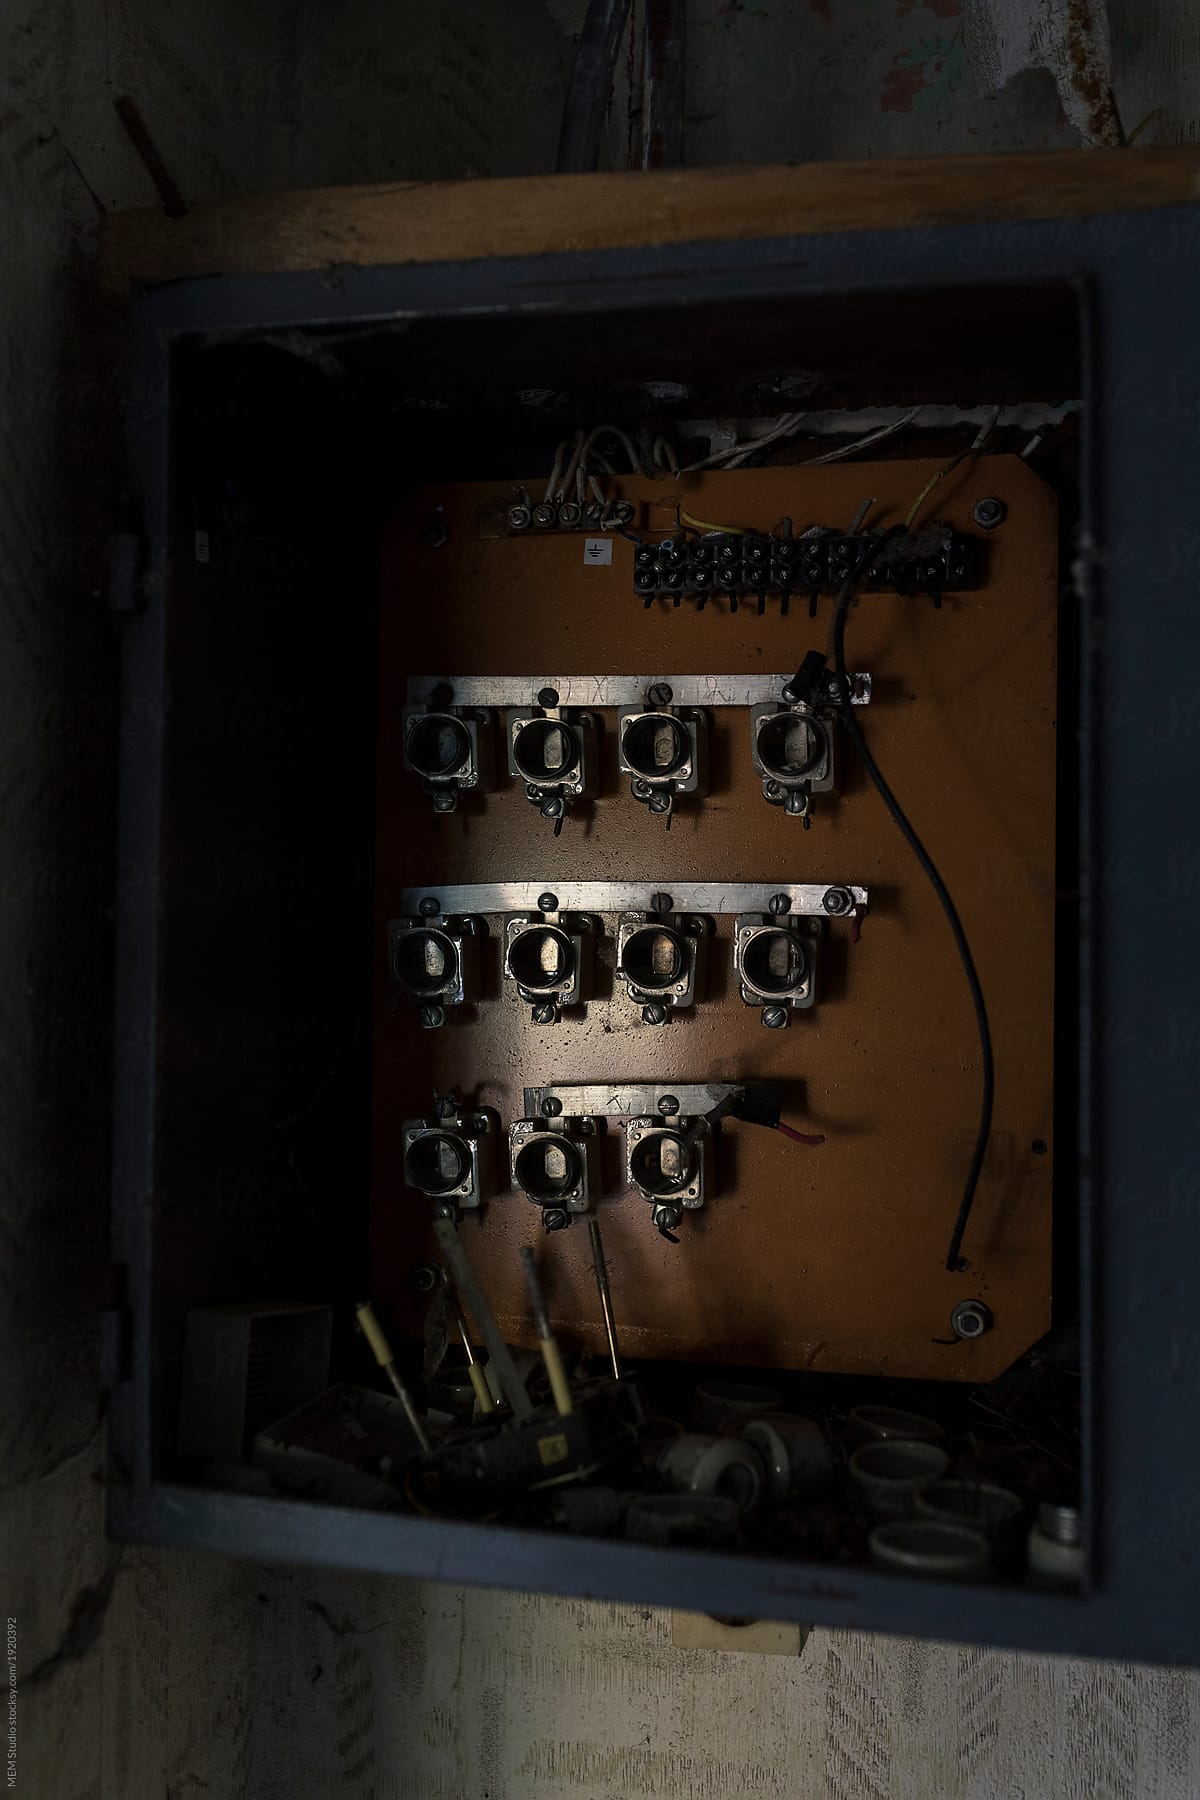 hight resolution of old damaged fuse box by mem studio for stocksy united